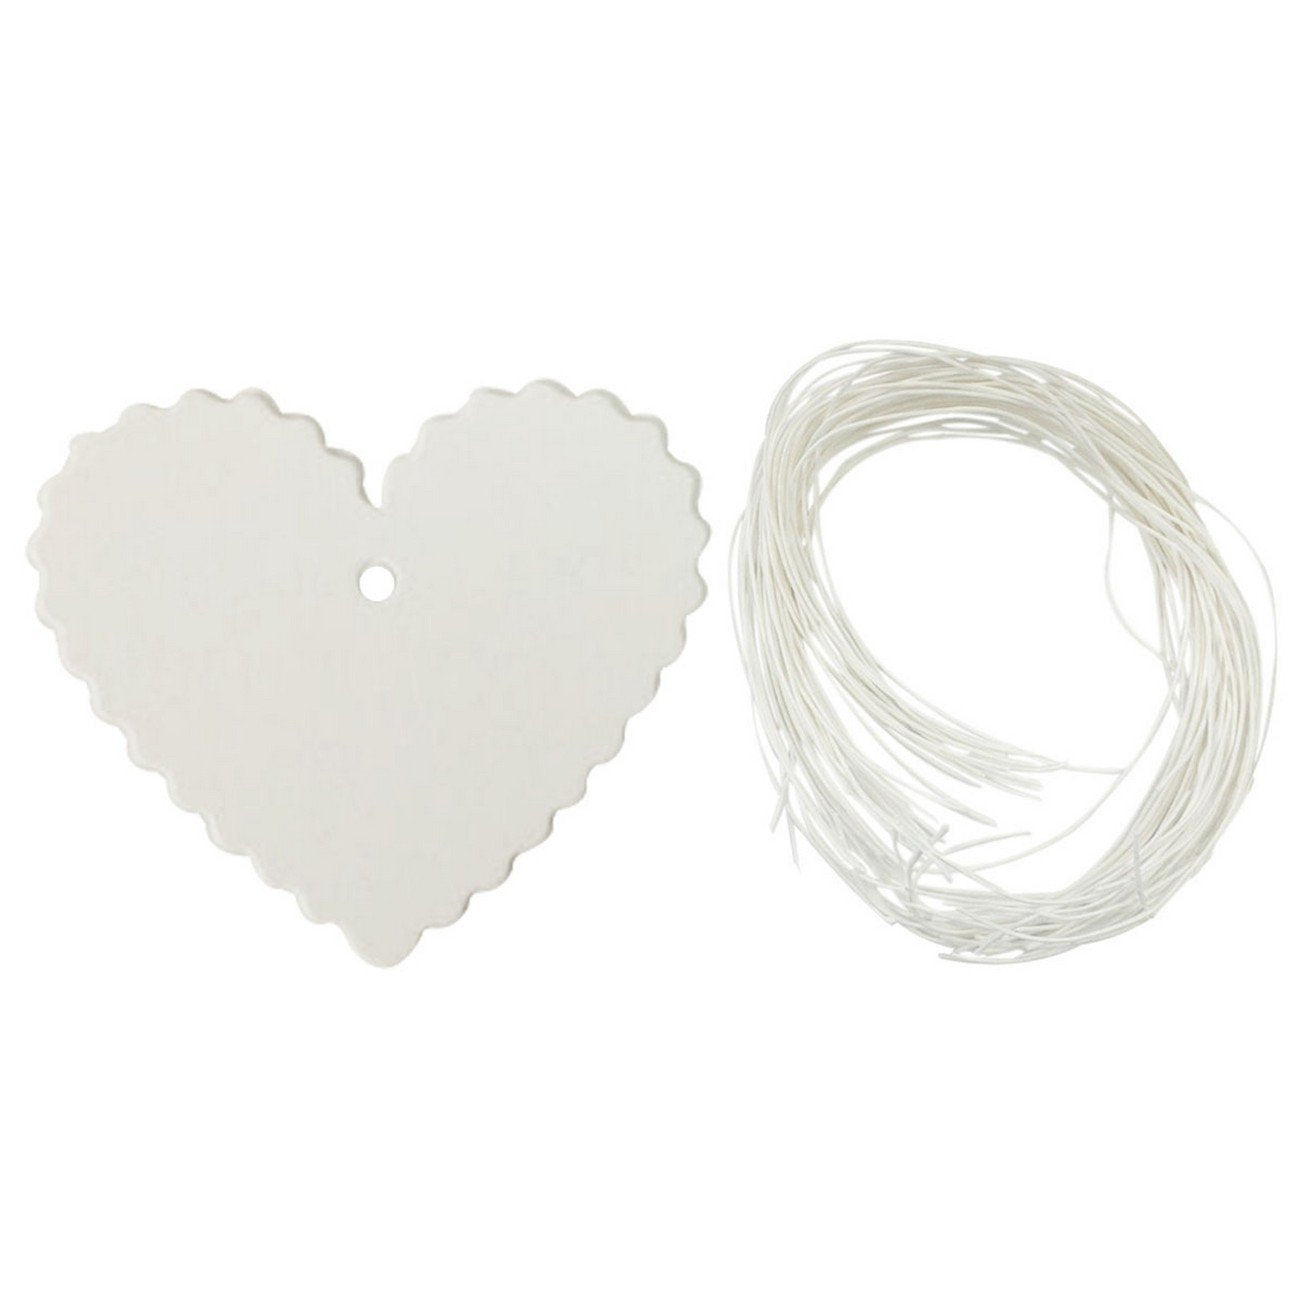 Wrapables 50 Gift Tags with Free Cut Strings - White Heart